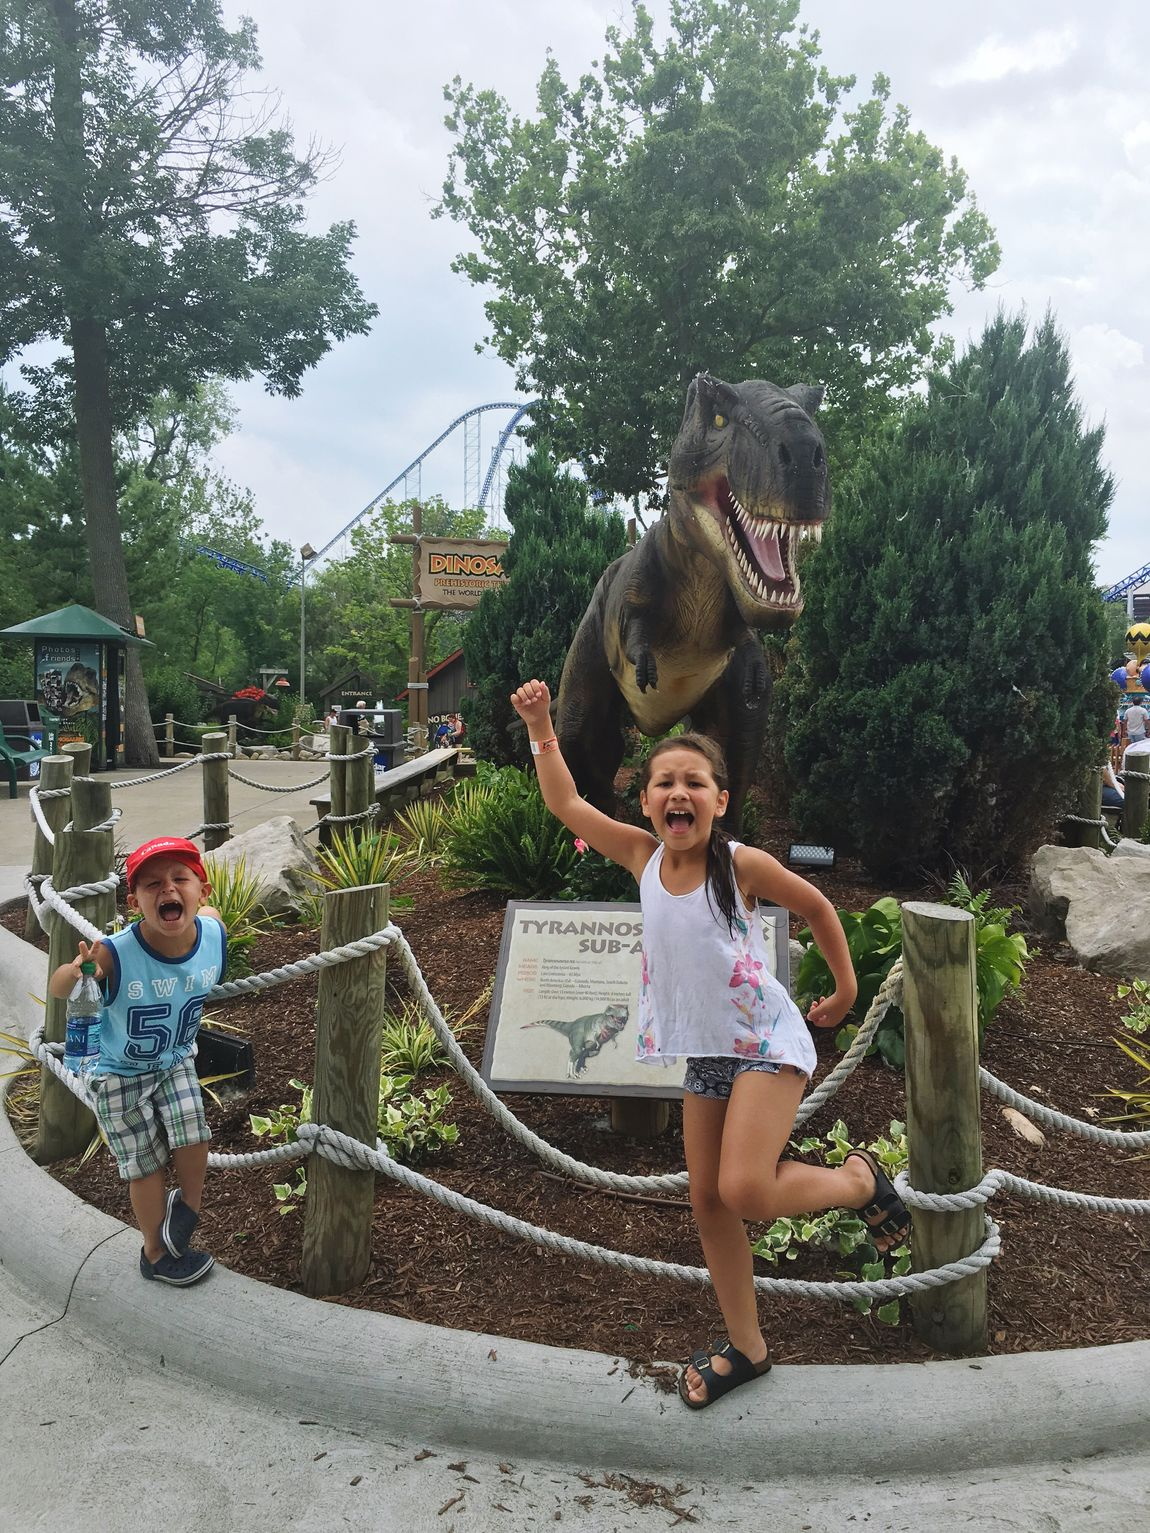 RUN FOR YOUR LIFE! DinosaurAlive Dinosaur Cedar Point Dinosaur Alive Love These Moments Taking Photos Family Vacation Love ♥ Being Crazy(: Memories Taking Photos Holidays ☀ Kids Grow Up So Fast Run For Your Life Watch Out